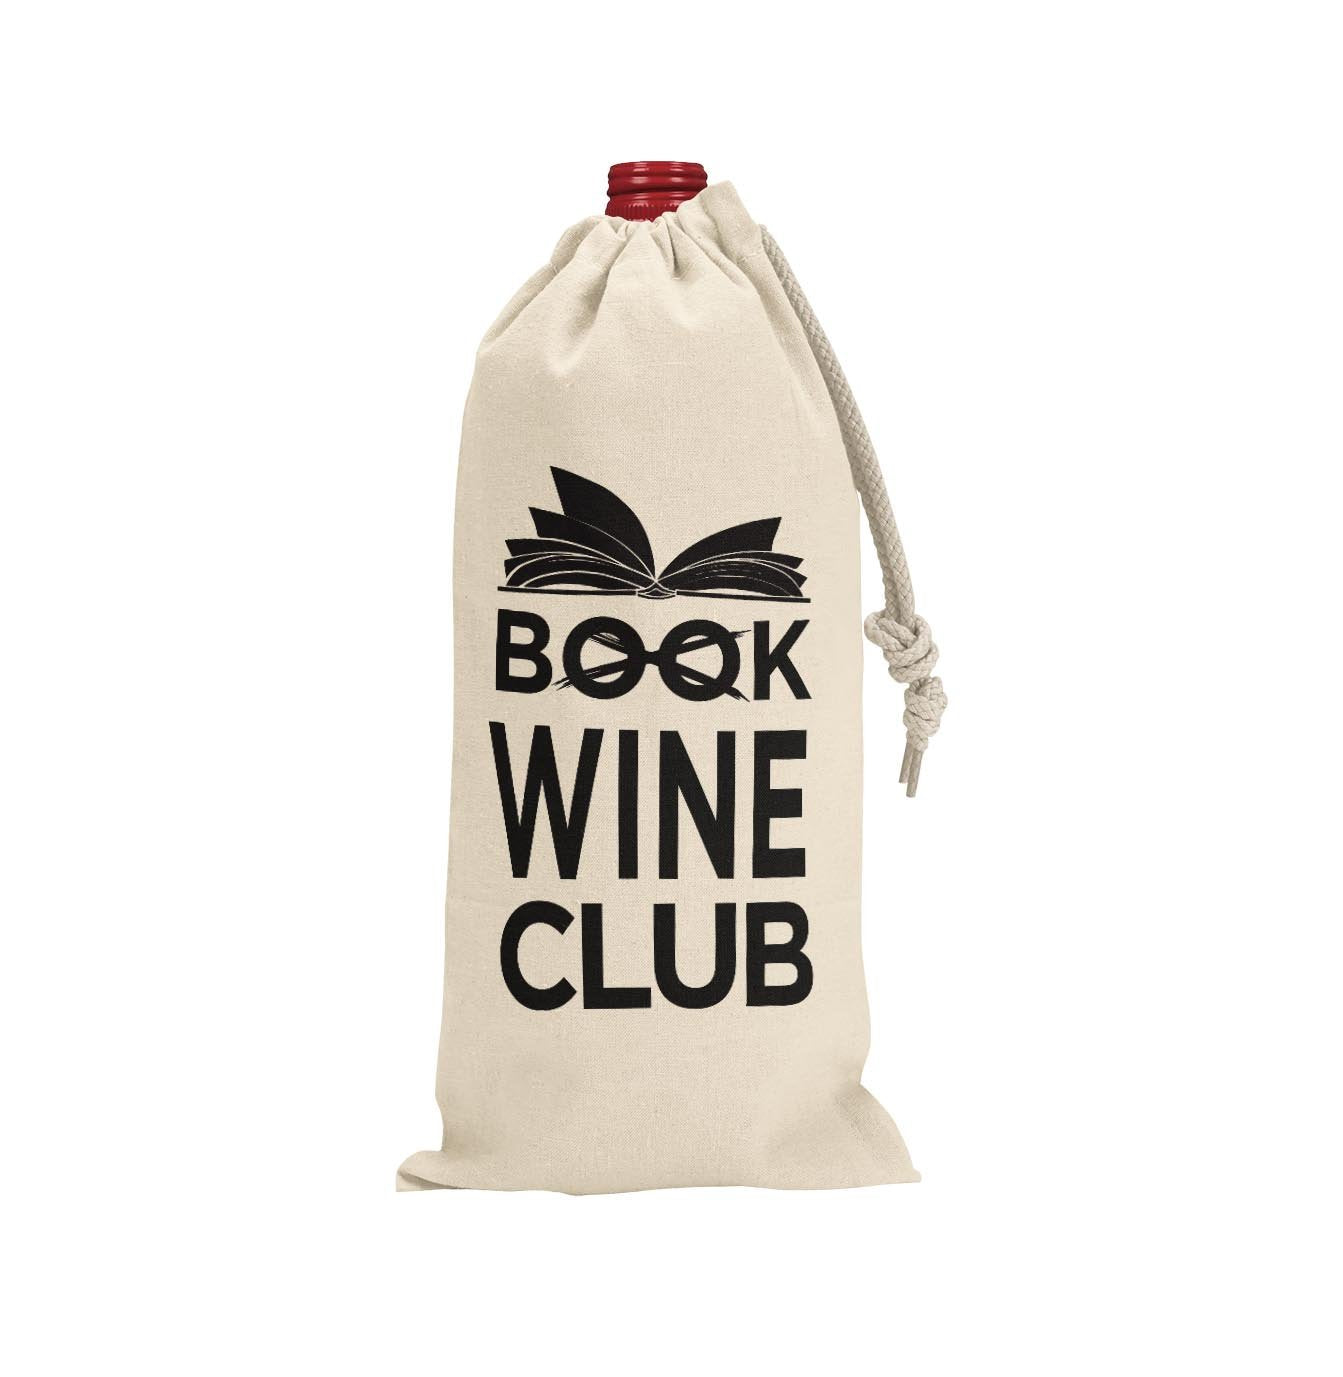 BOOK CLUB WINE BAG - Georgie & Moon